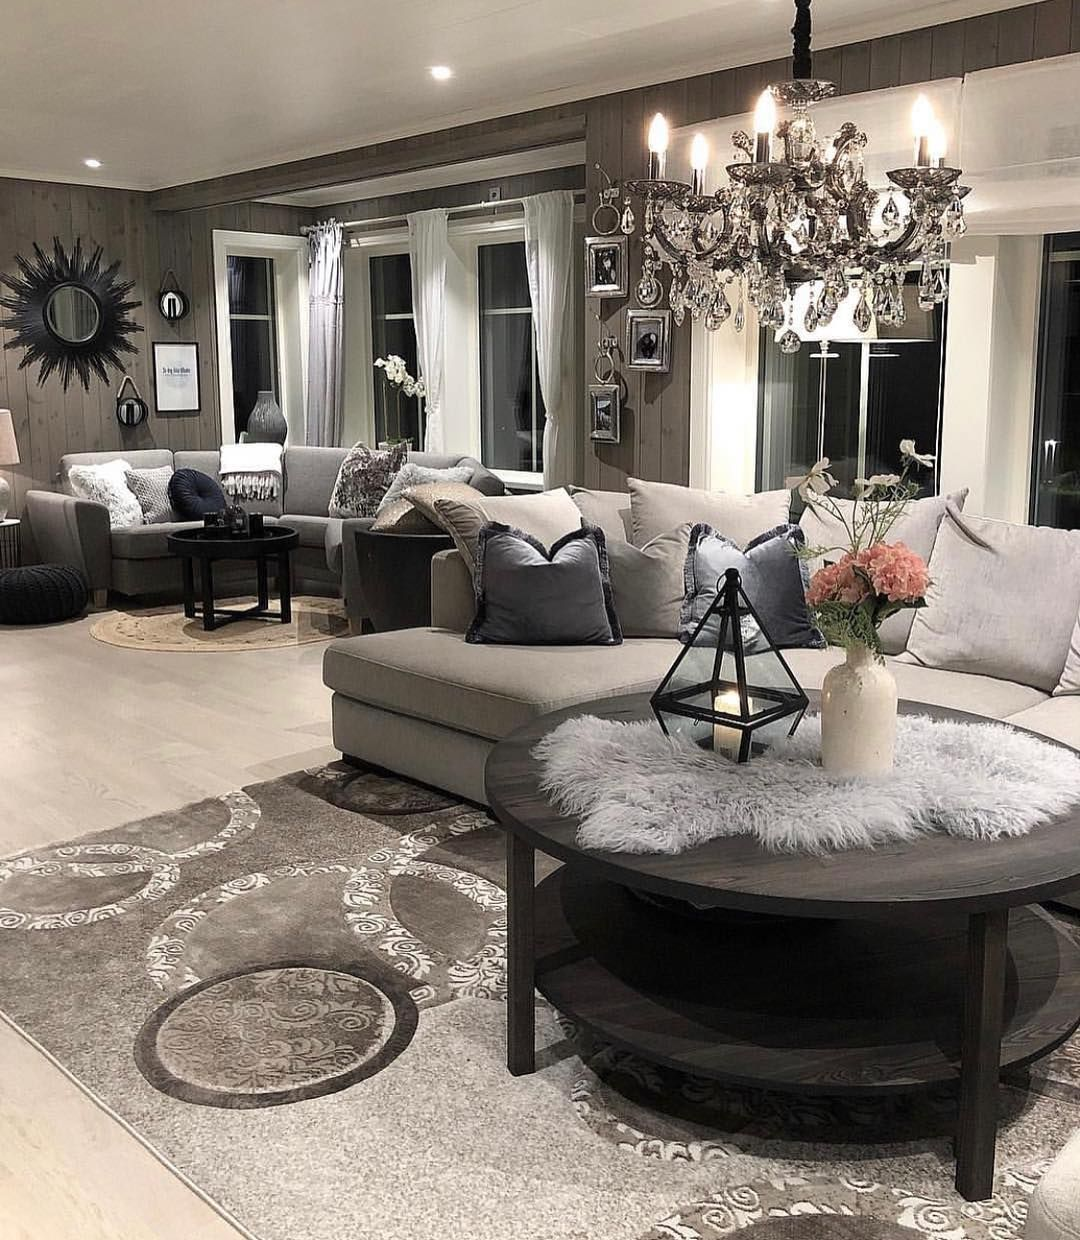 New The 10 Best Home Decor Today With Pictures Homedecor Home Decor Home Interior Design